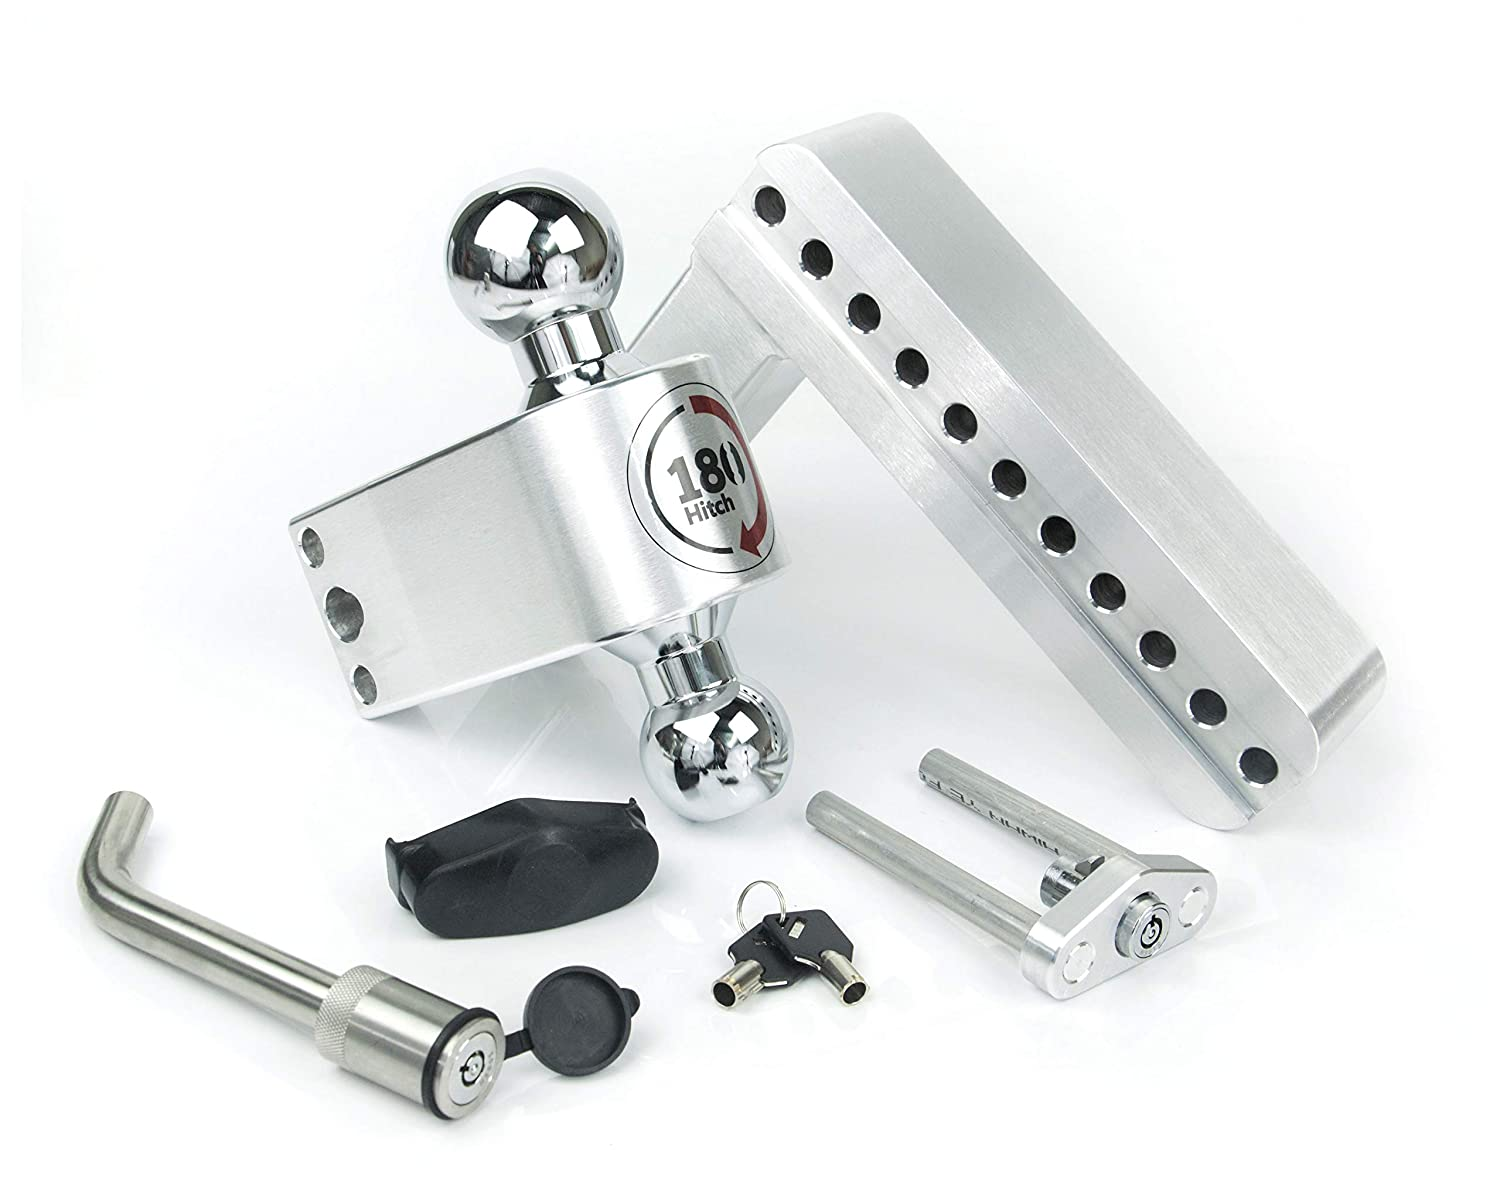 Stainless Steel Combo Ball Keyed Alike Key Lock and Hitch Pin Weigh Safe LTB8-2-KA 8 Drop 180 Hitch w// 2 Shank//Shaft /Adjustable Aluminum Trailer Hitch /& Ball Mount 2 /& 2-5//16